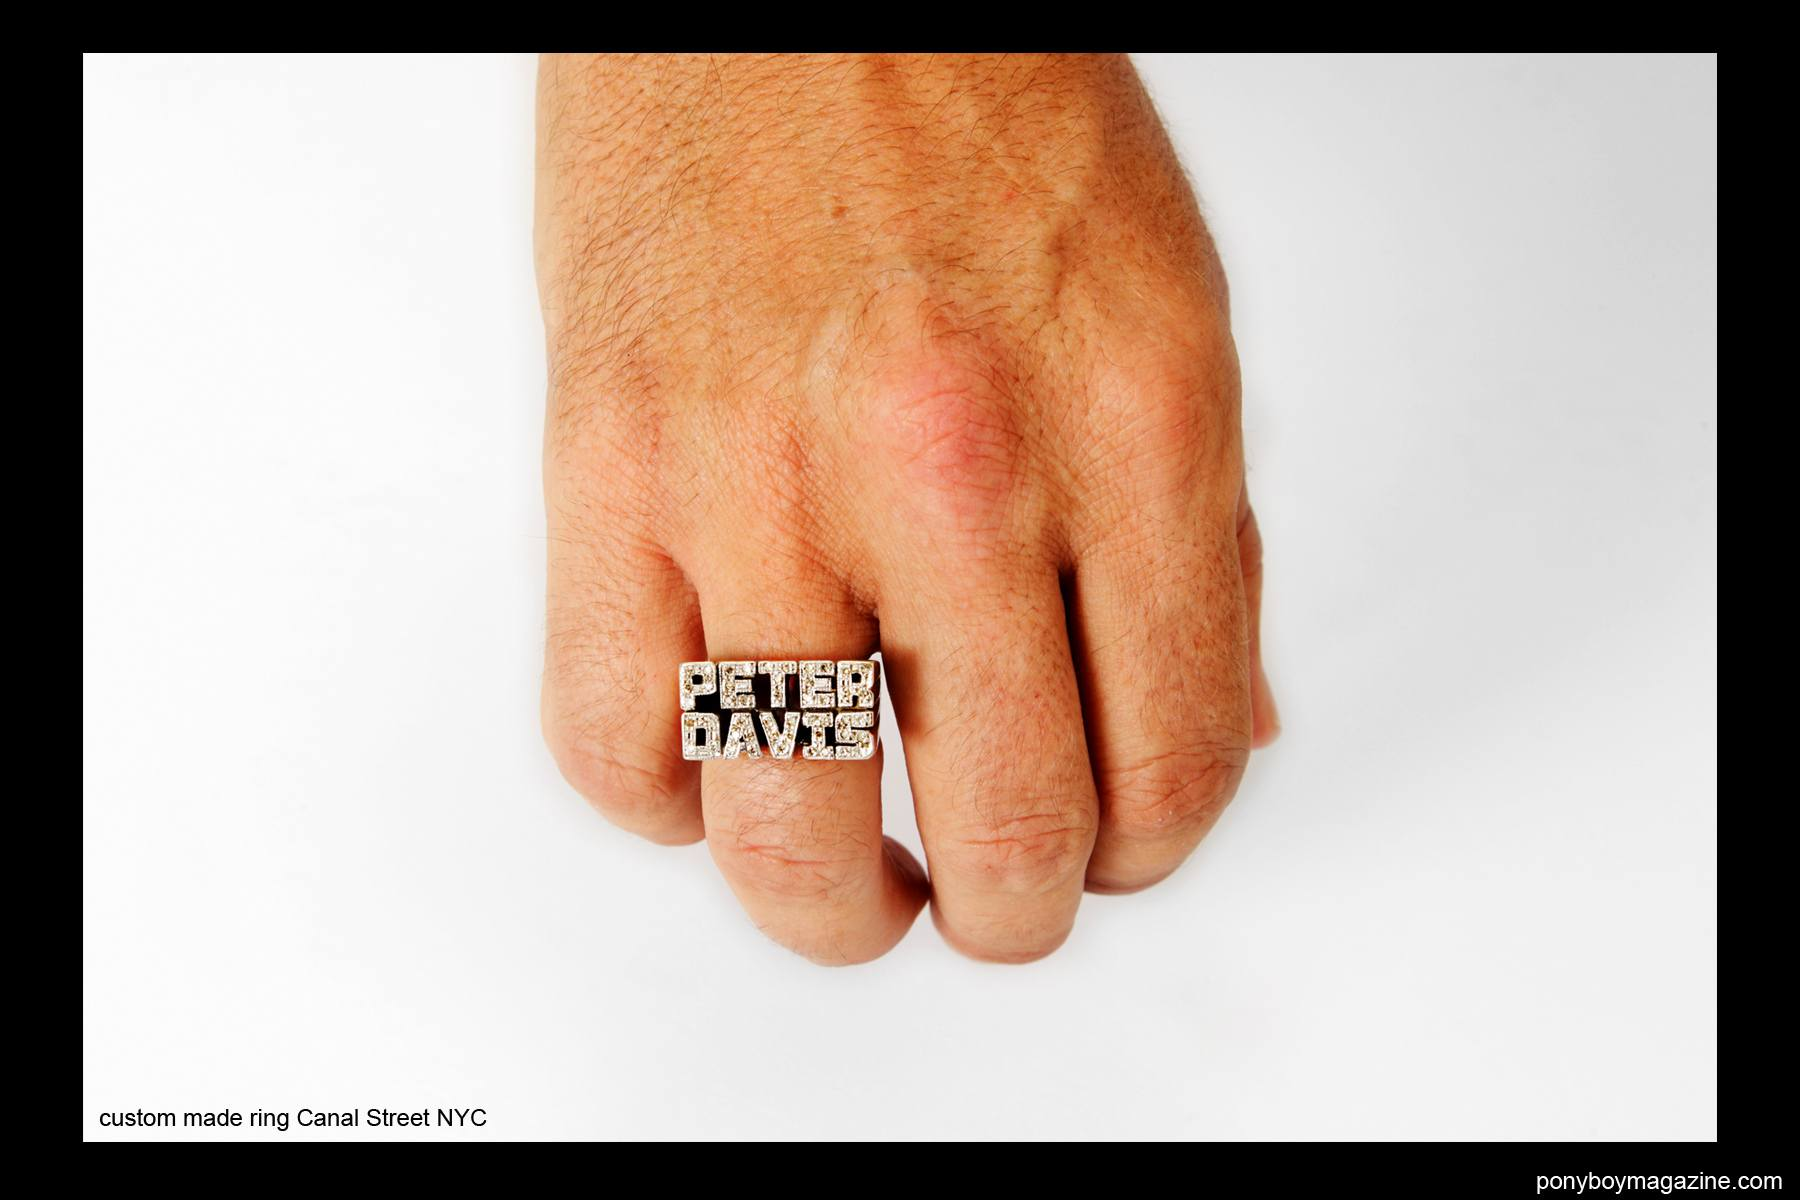 A ring owned by editor Peter Davis. Photographed for Ponyboy Magazine by Alexander Thompson in New York City.